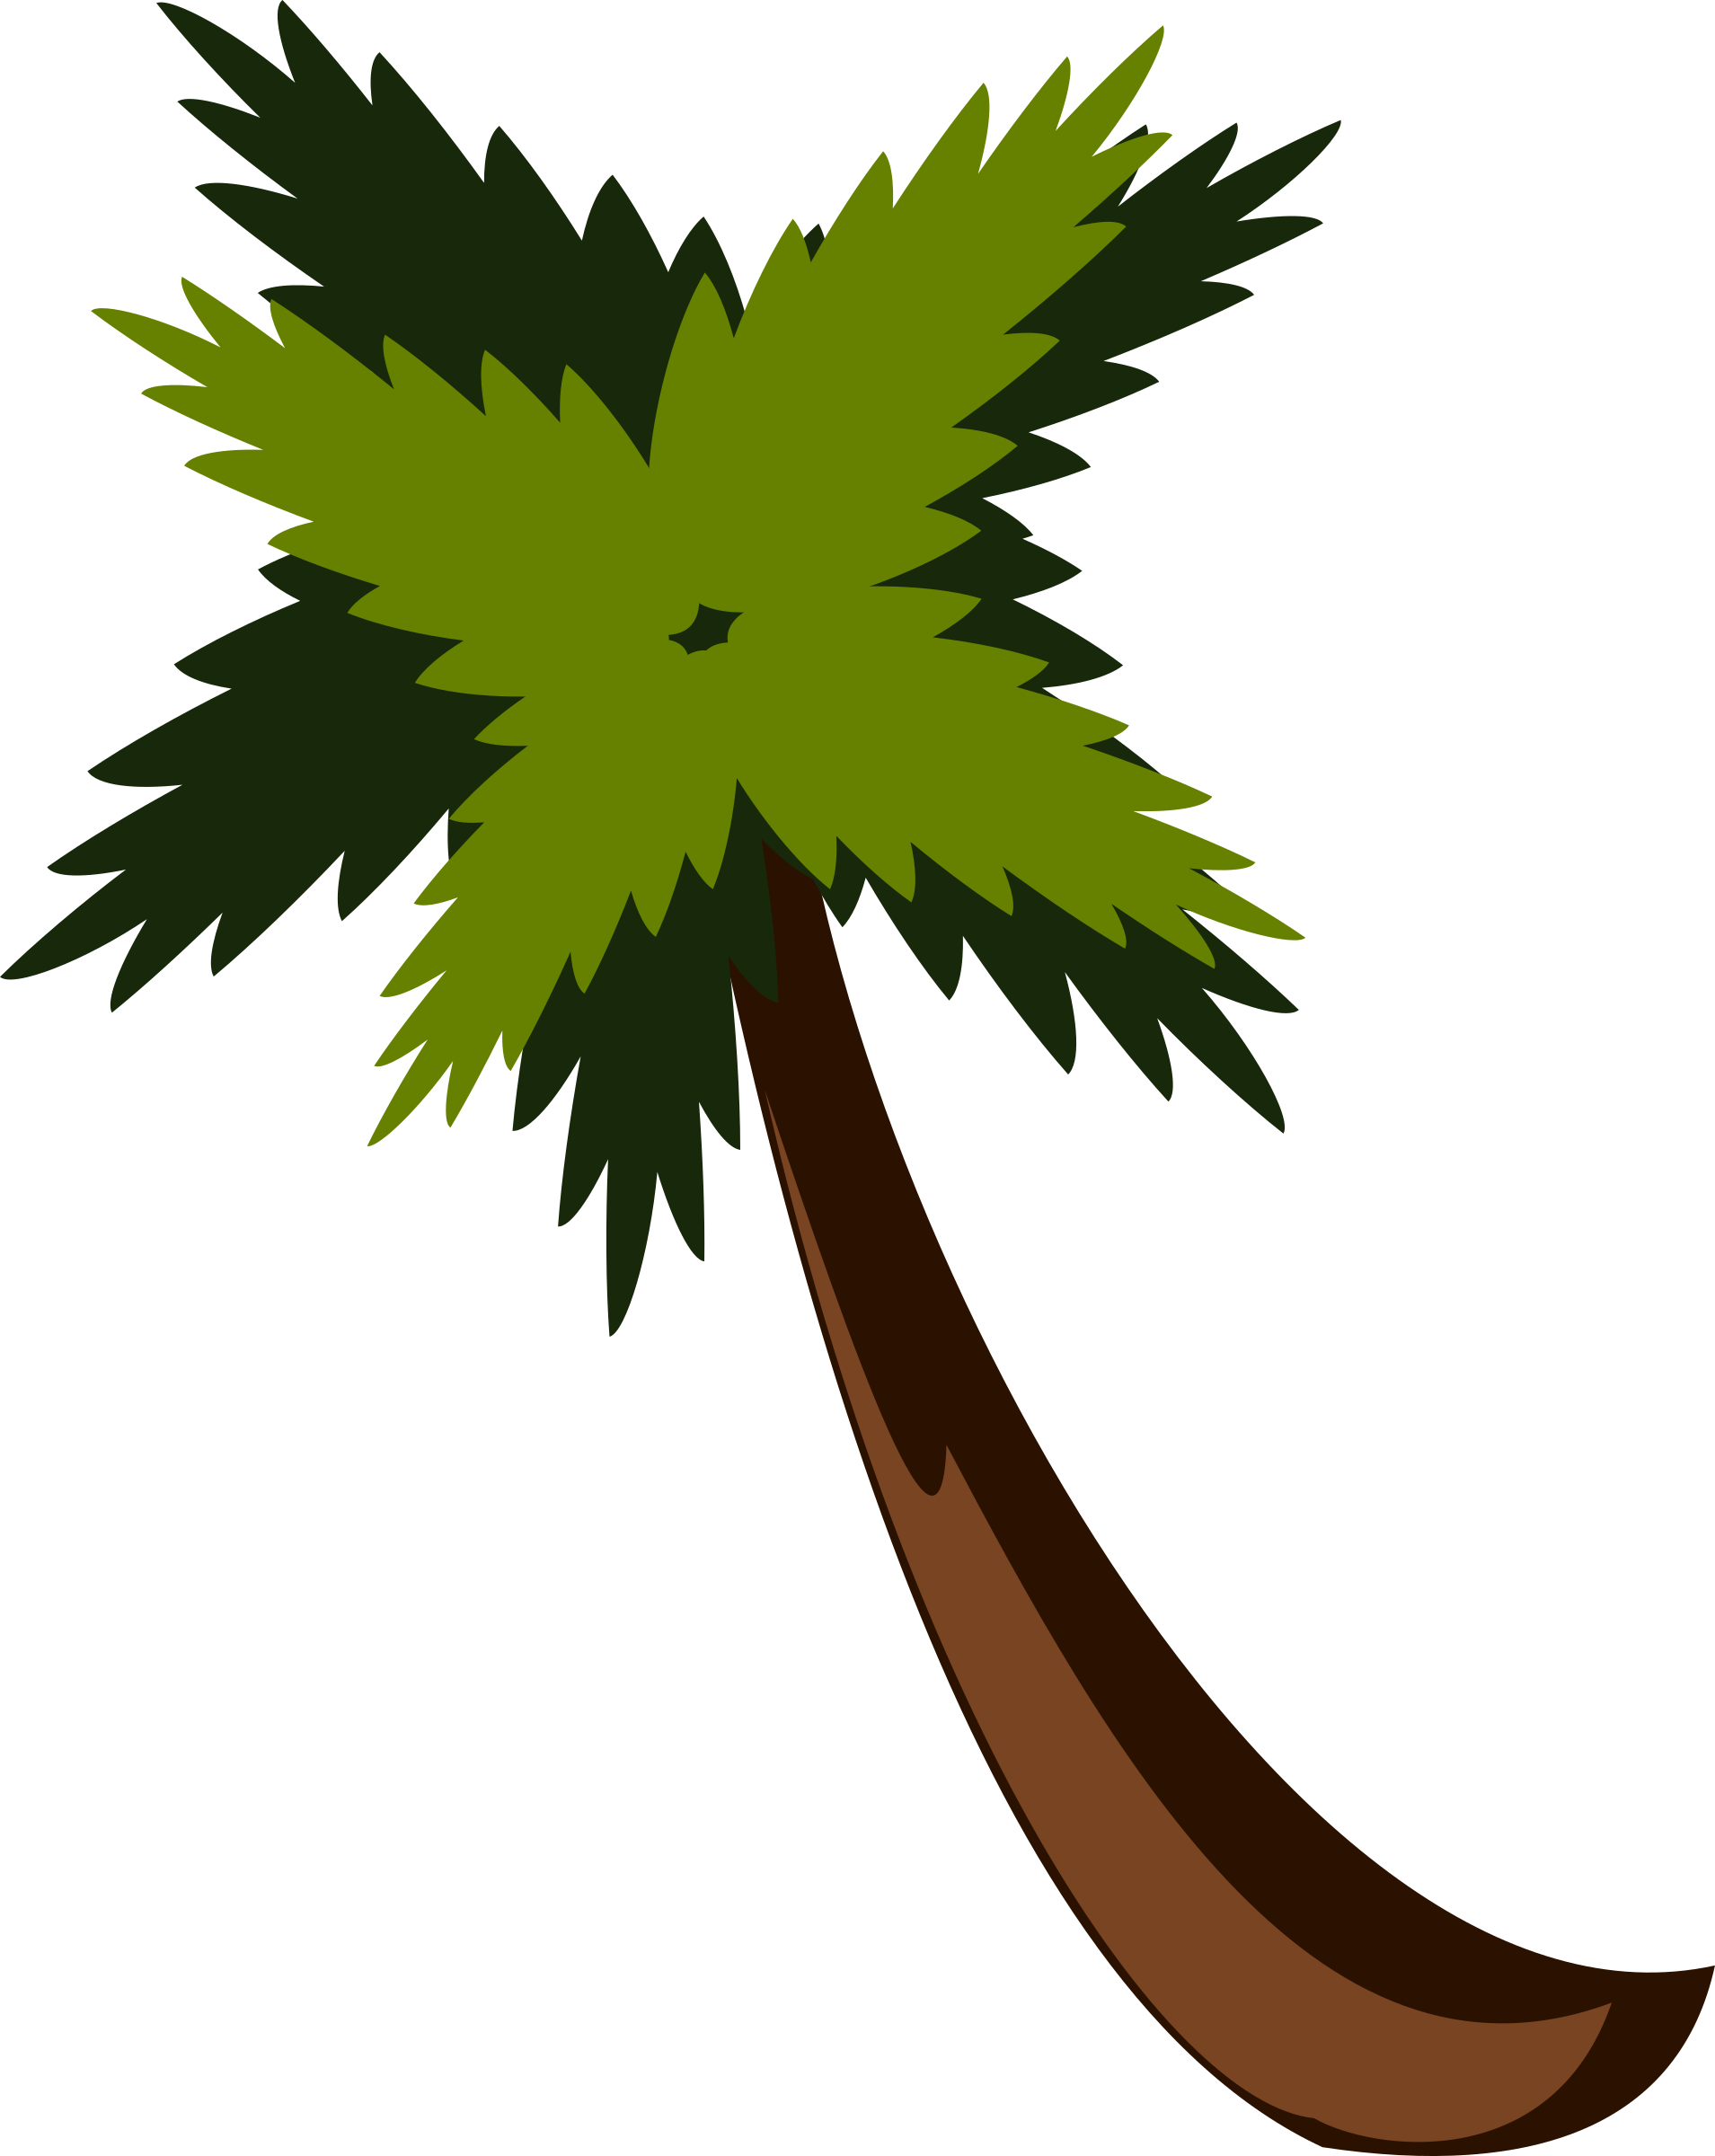 Jungle tree clipart vector black and white Clipart - PalmTreeBySteve vector black and white